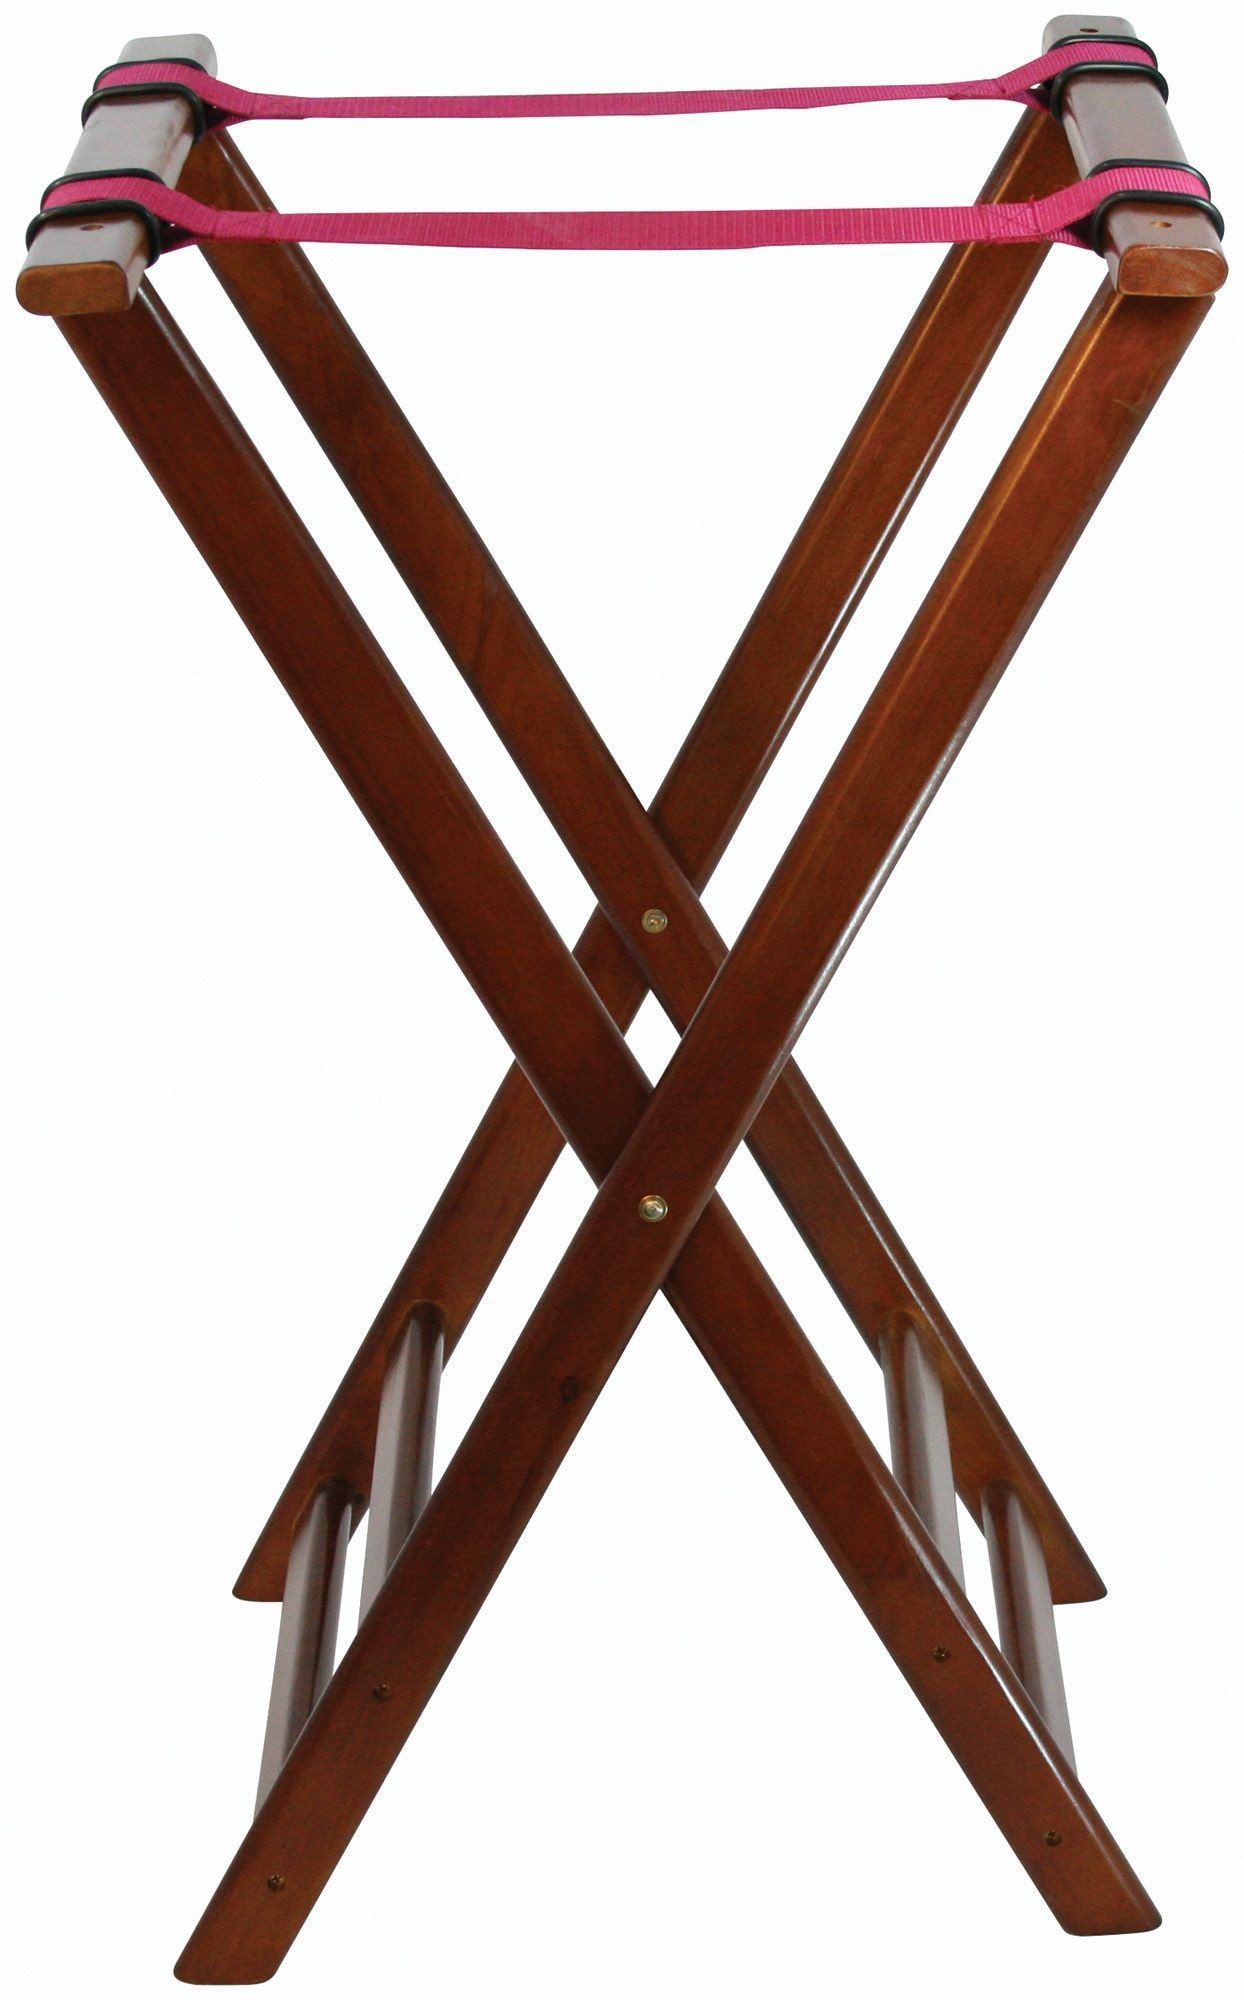 Walnut-Finish Foldable Tray Stand - 32